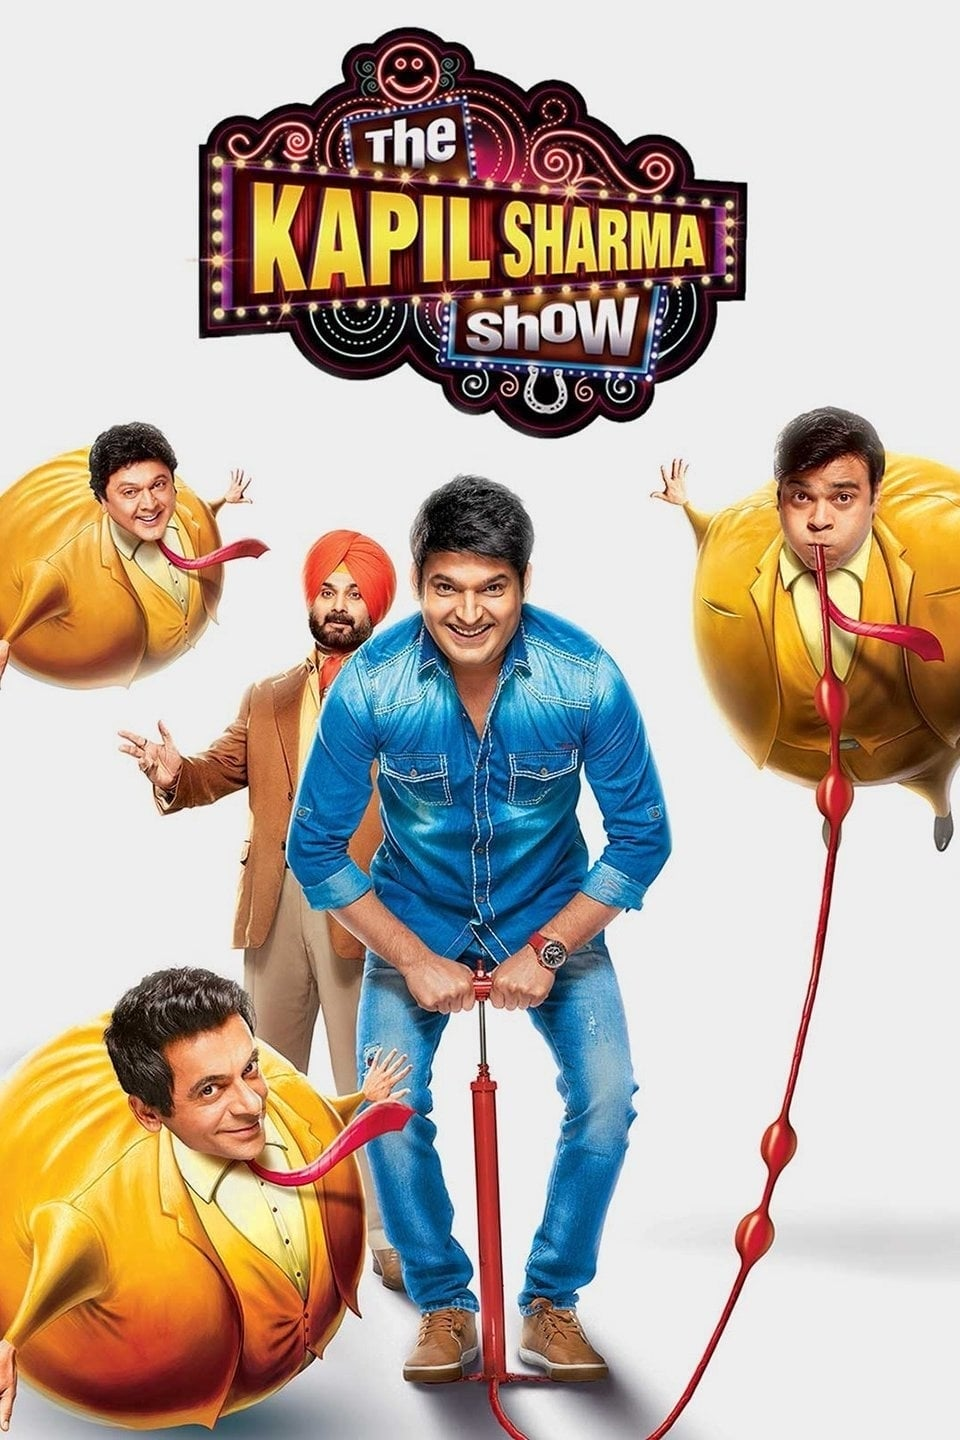 The Kapil Sharma Show (2019) Season 2 [19th Jan 2020] 576p HDTV | Full Episode